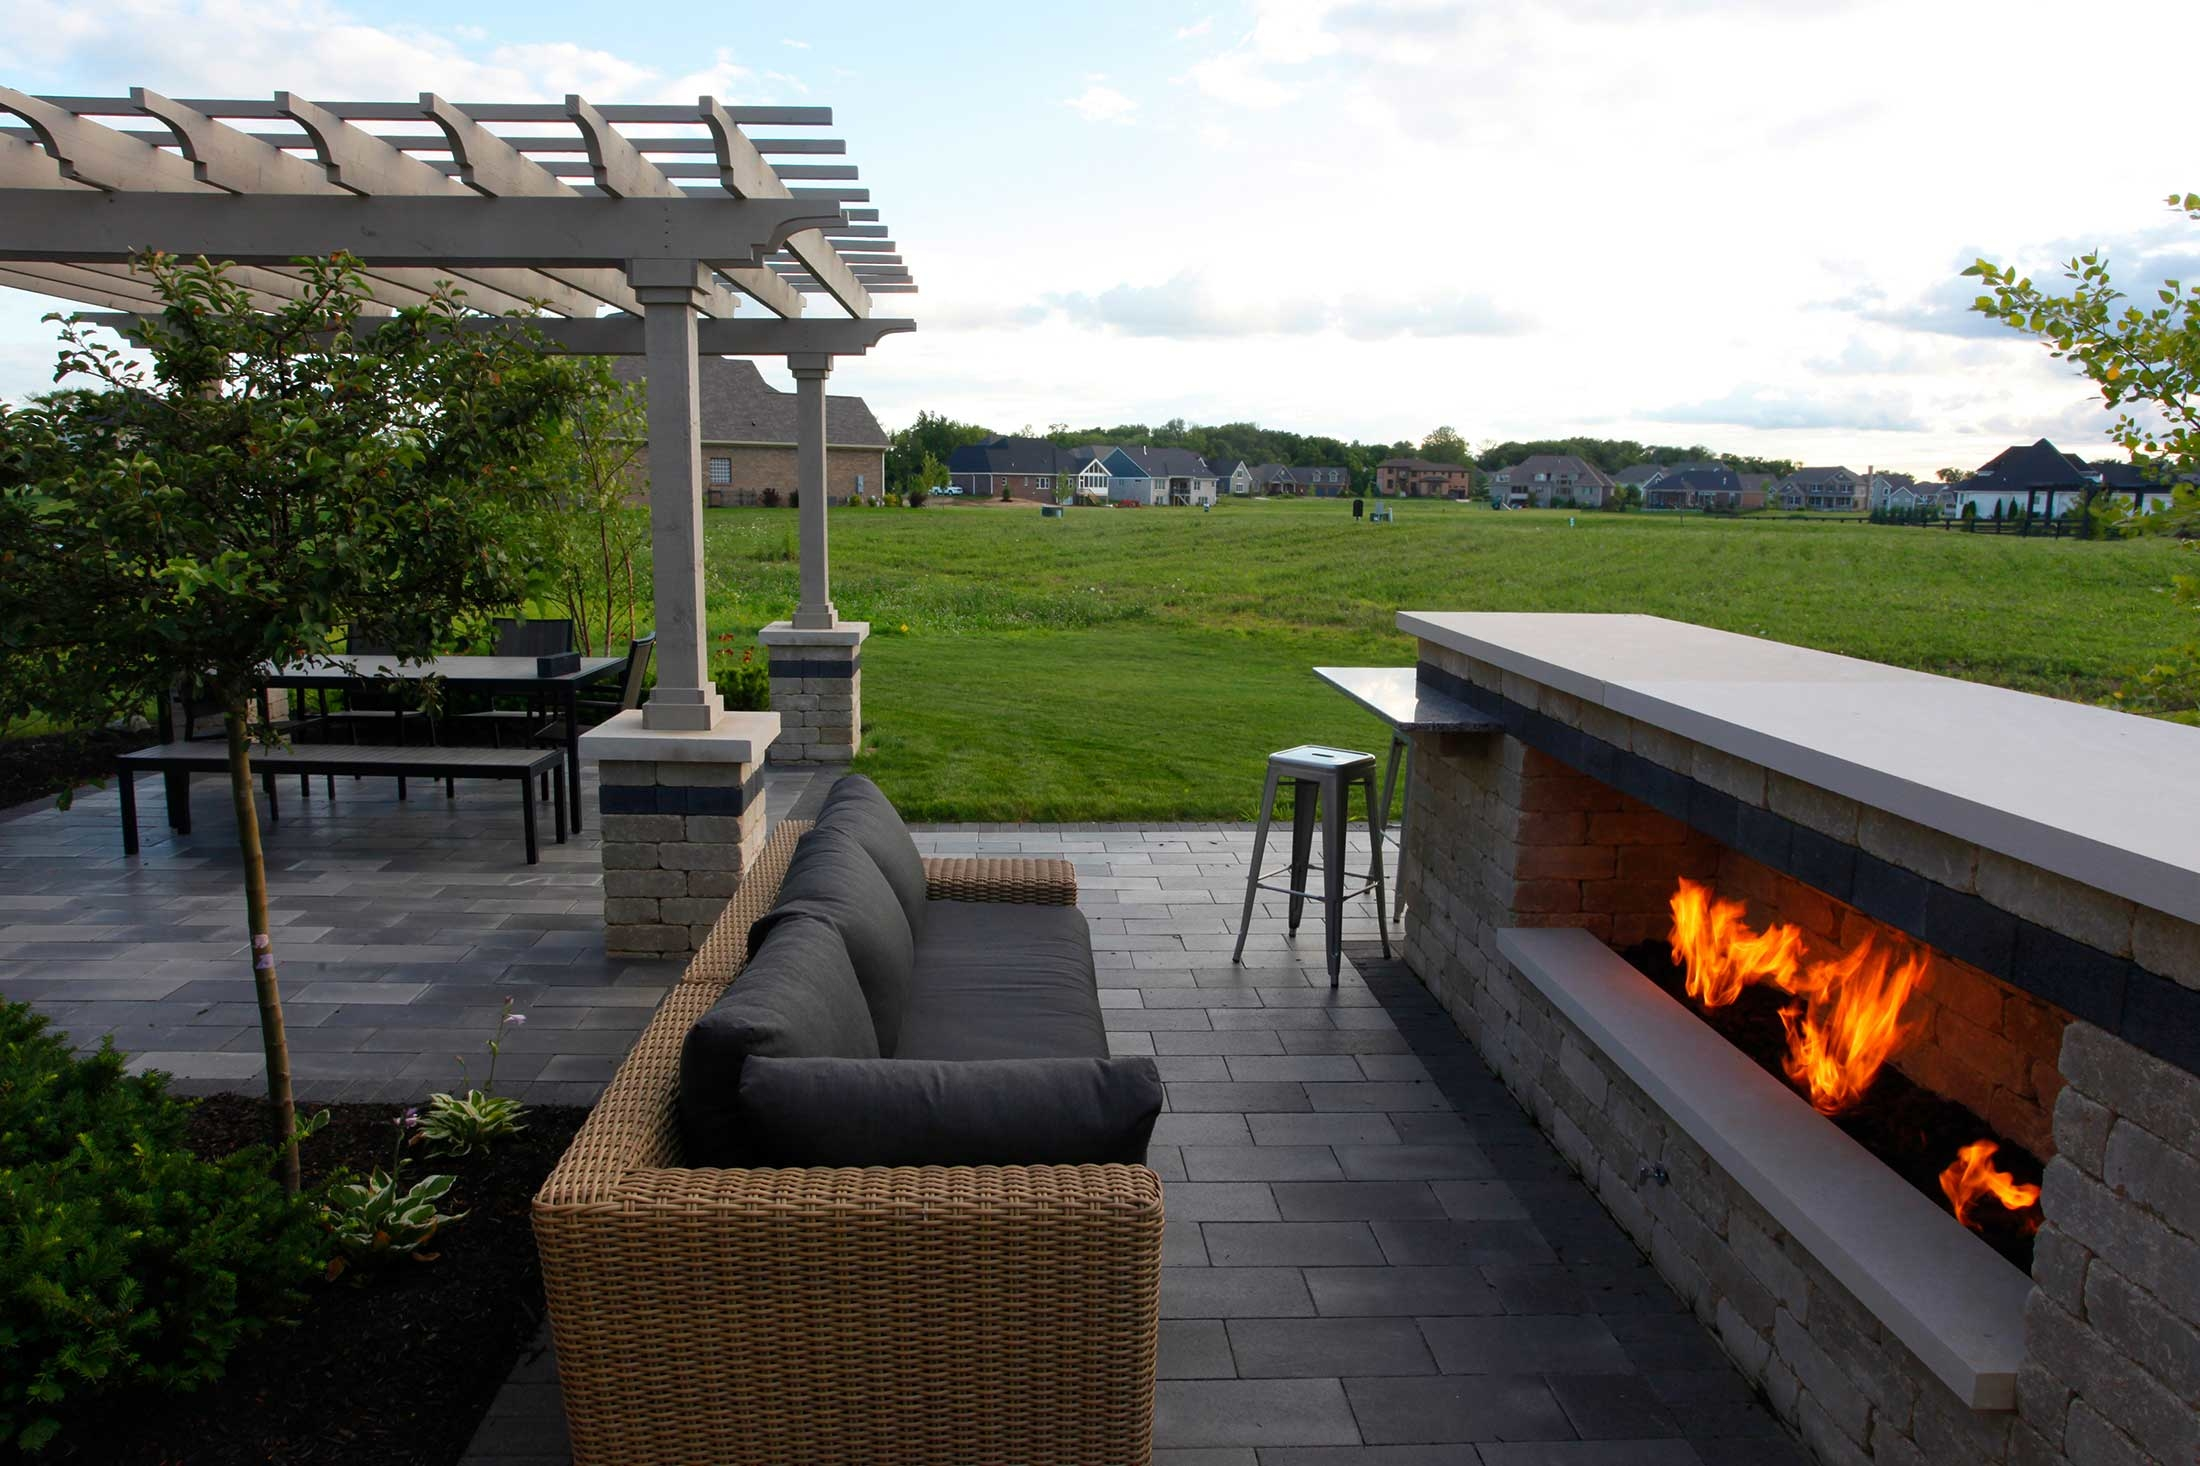 This multifunctional outdoor living space features zones for living, dining, cooking and entertaining